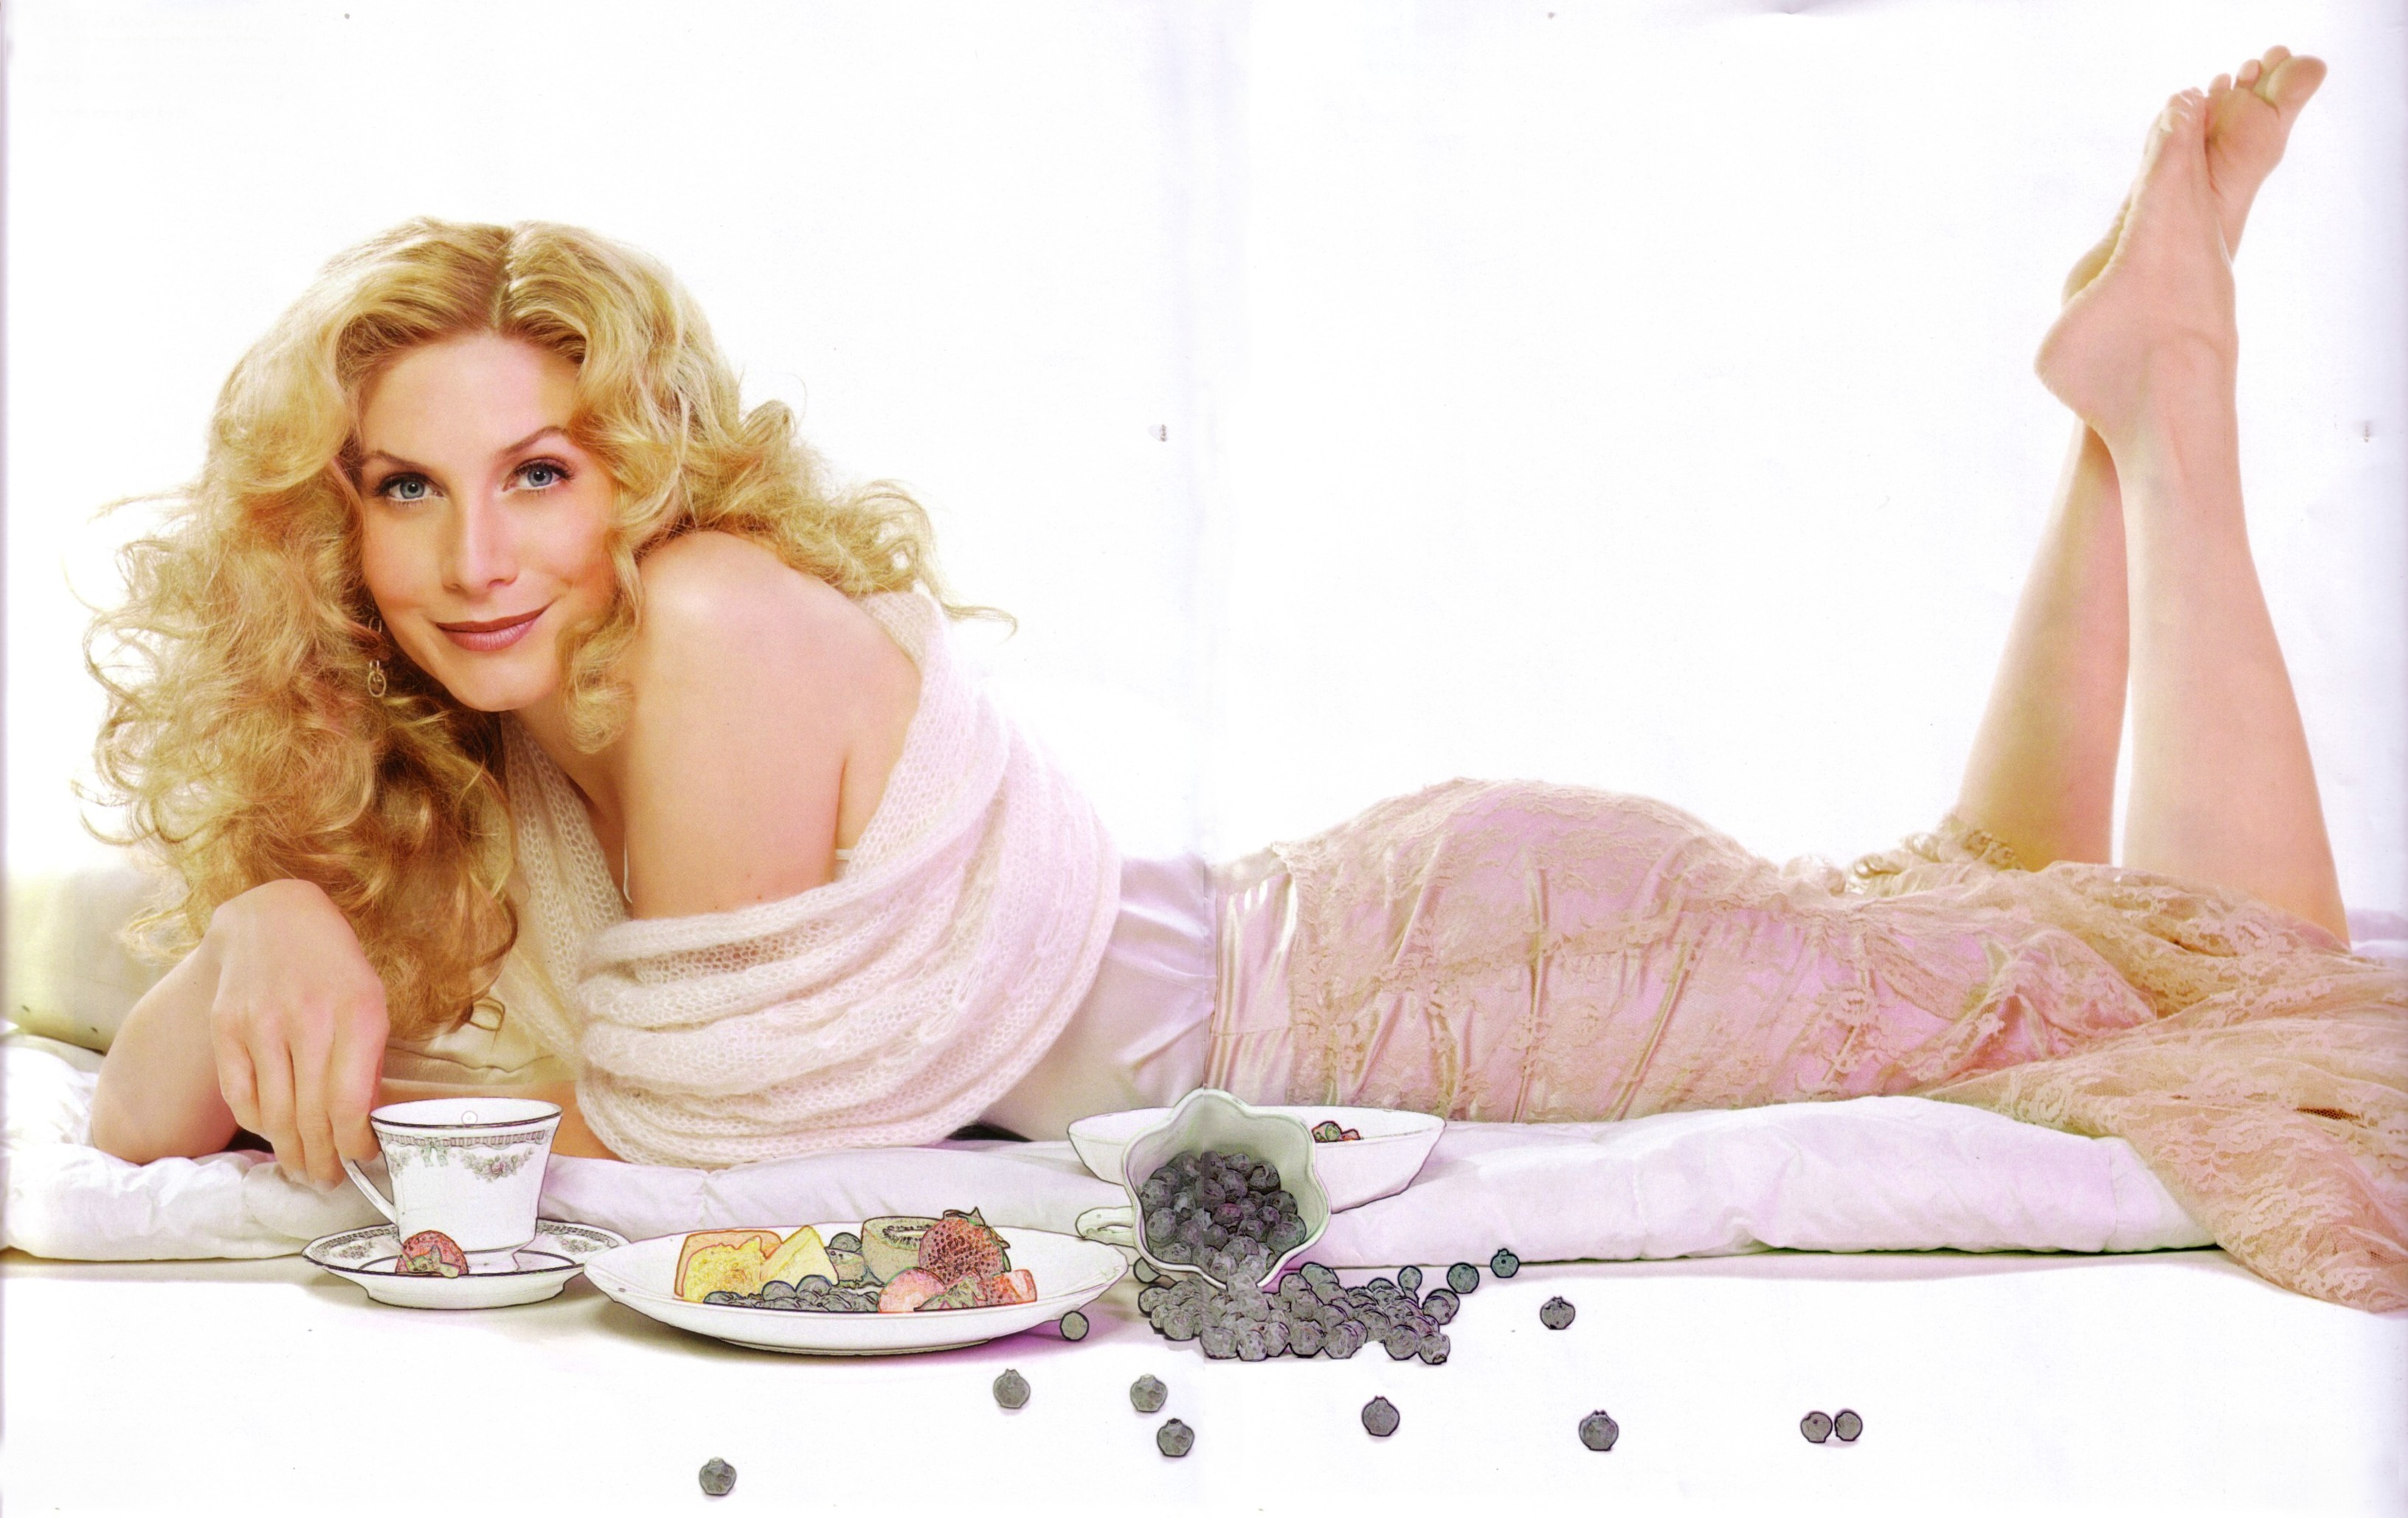 Elizabeth mitchell ass pictures — pic 15